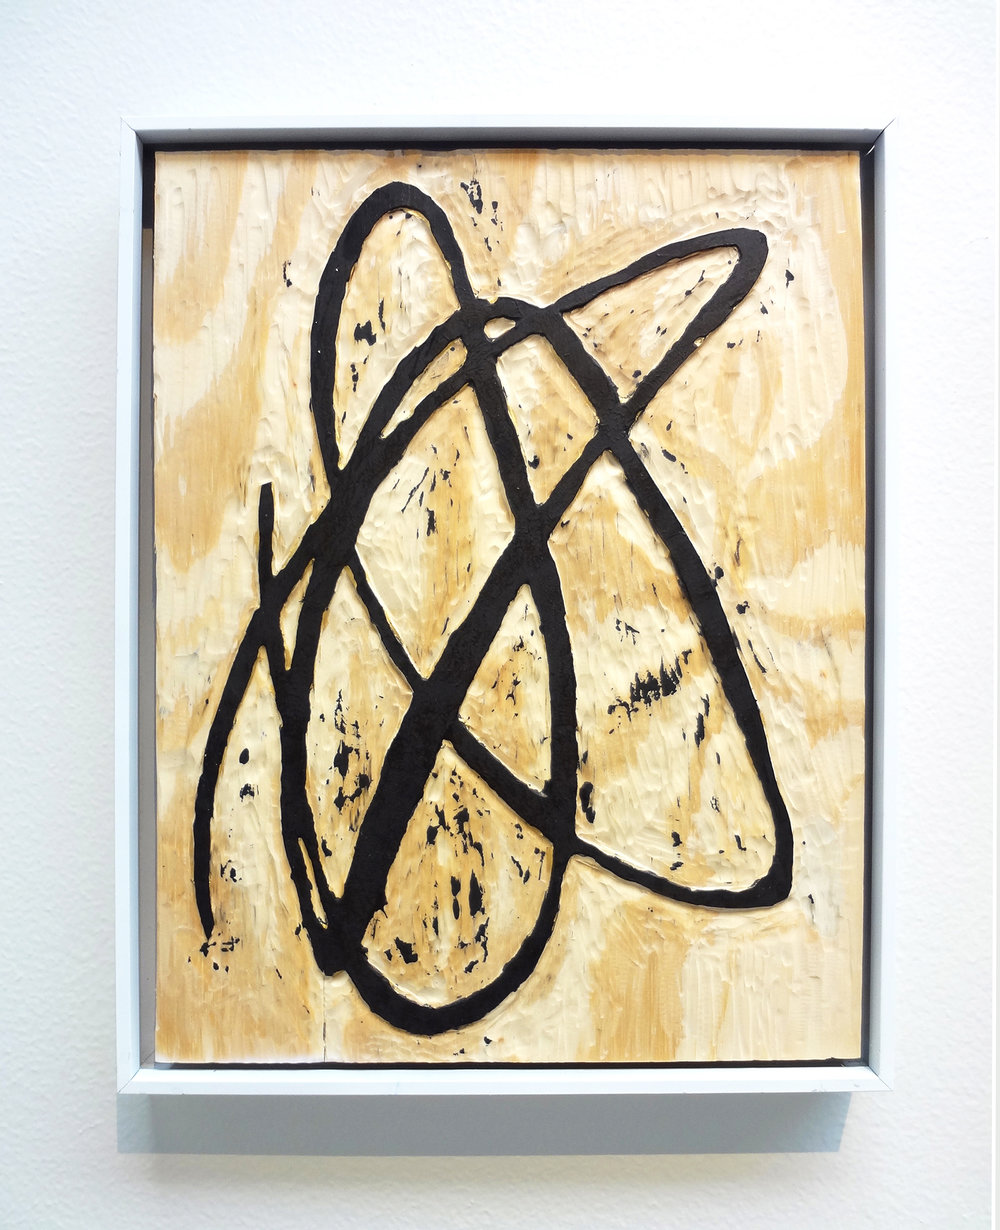 Meghan Gerety  Untitled 03 , 2015 blockprint ink on plywood 15 x 12 in. framed in aluminum